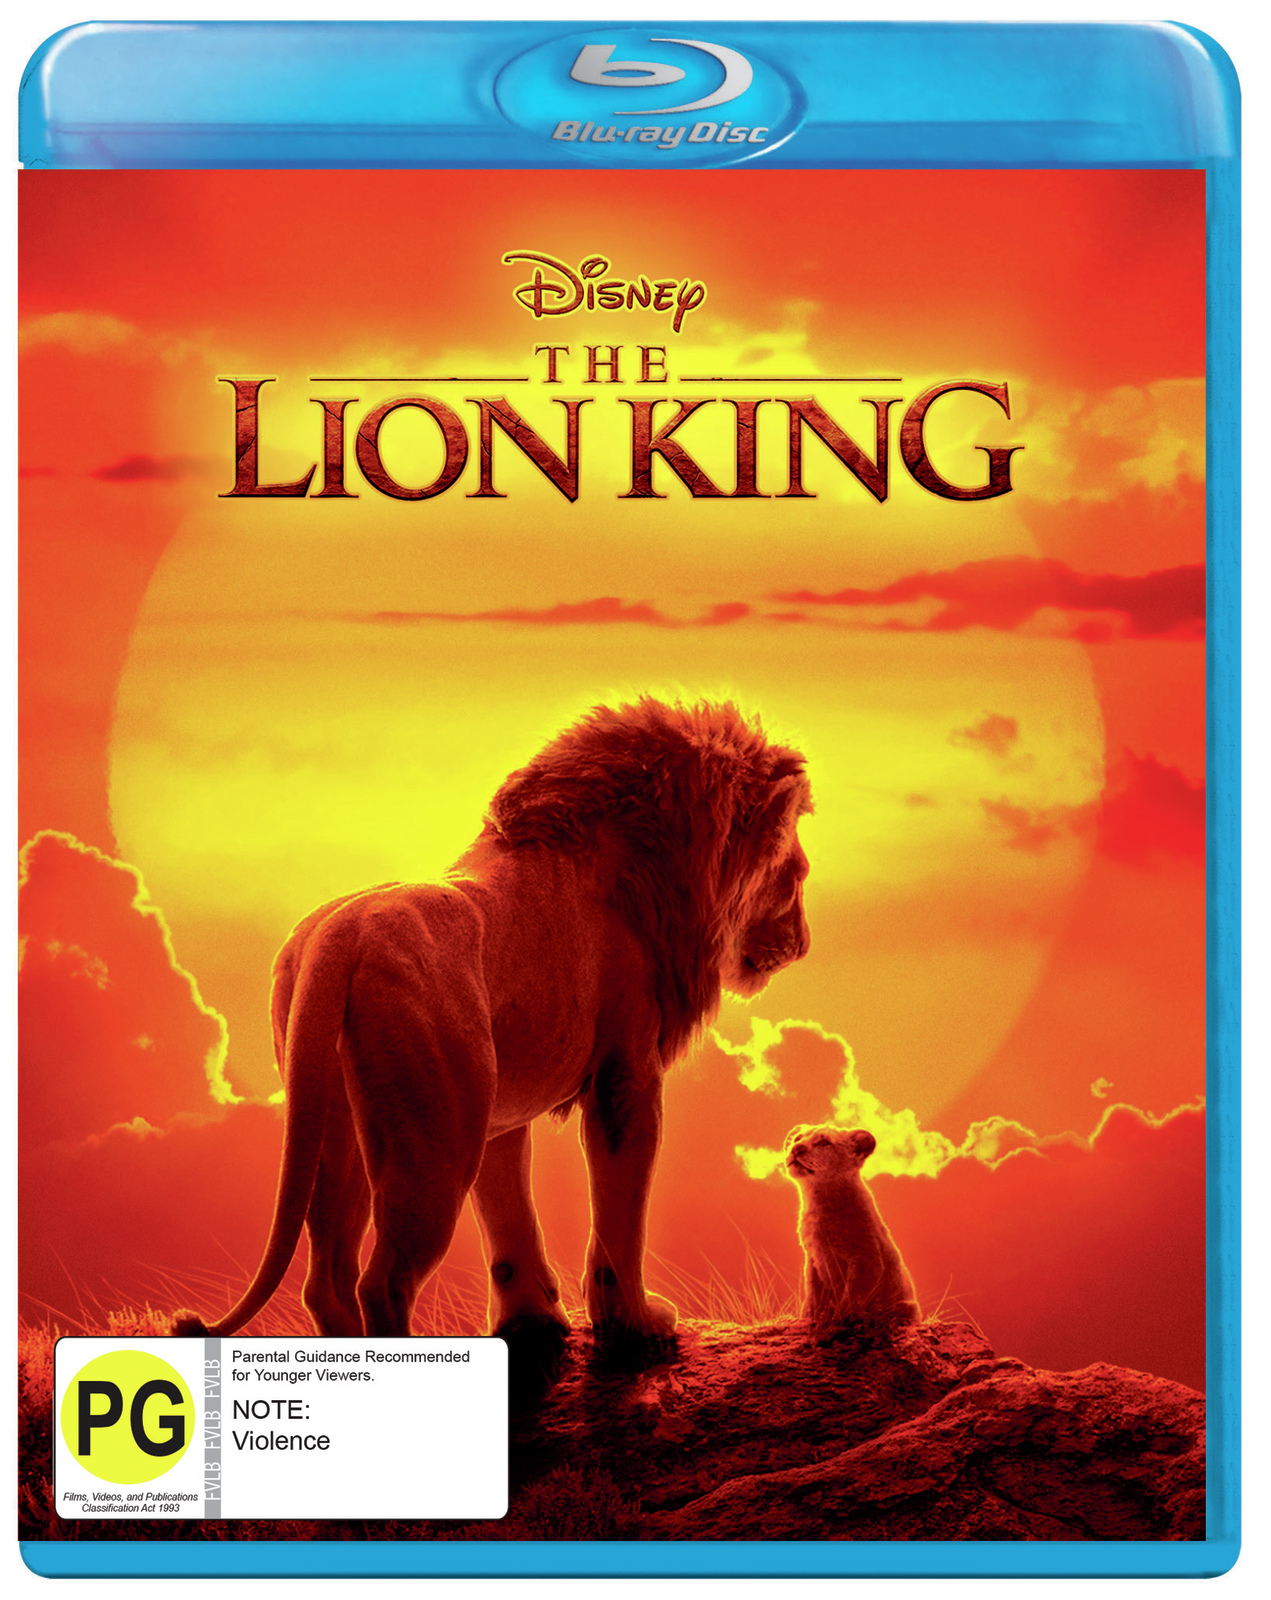 The Lion King - Bluray